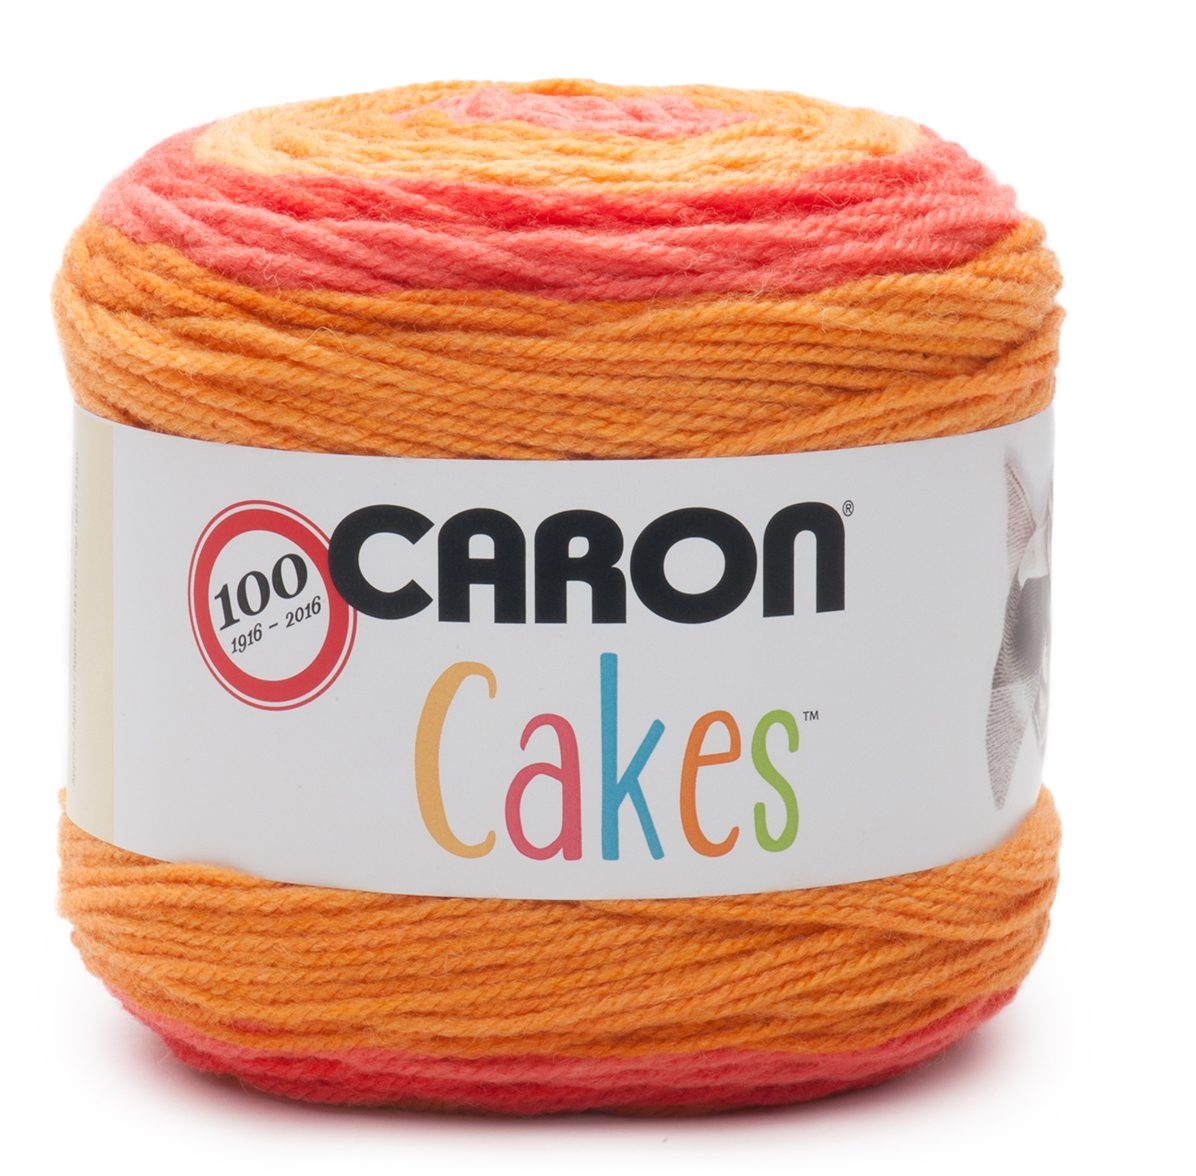 NEW Caron Cakes Spice Cake Yarn - one of 8 new colorways for 2017 plus free patterns featuring the original Caron Cakes colors as well as these new ones